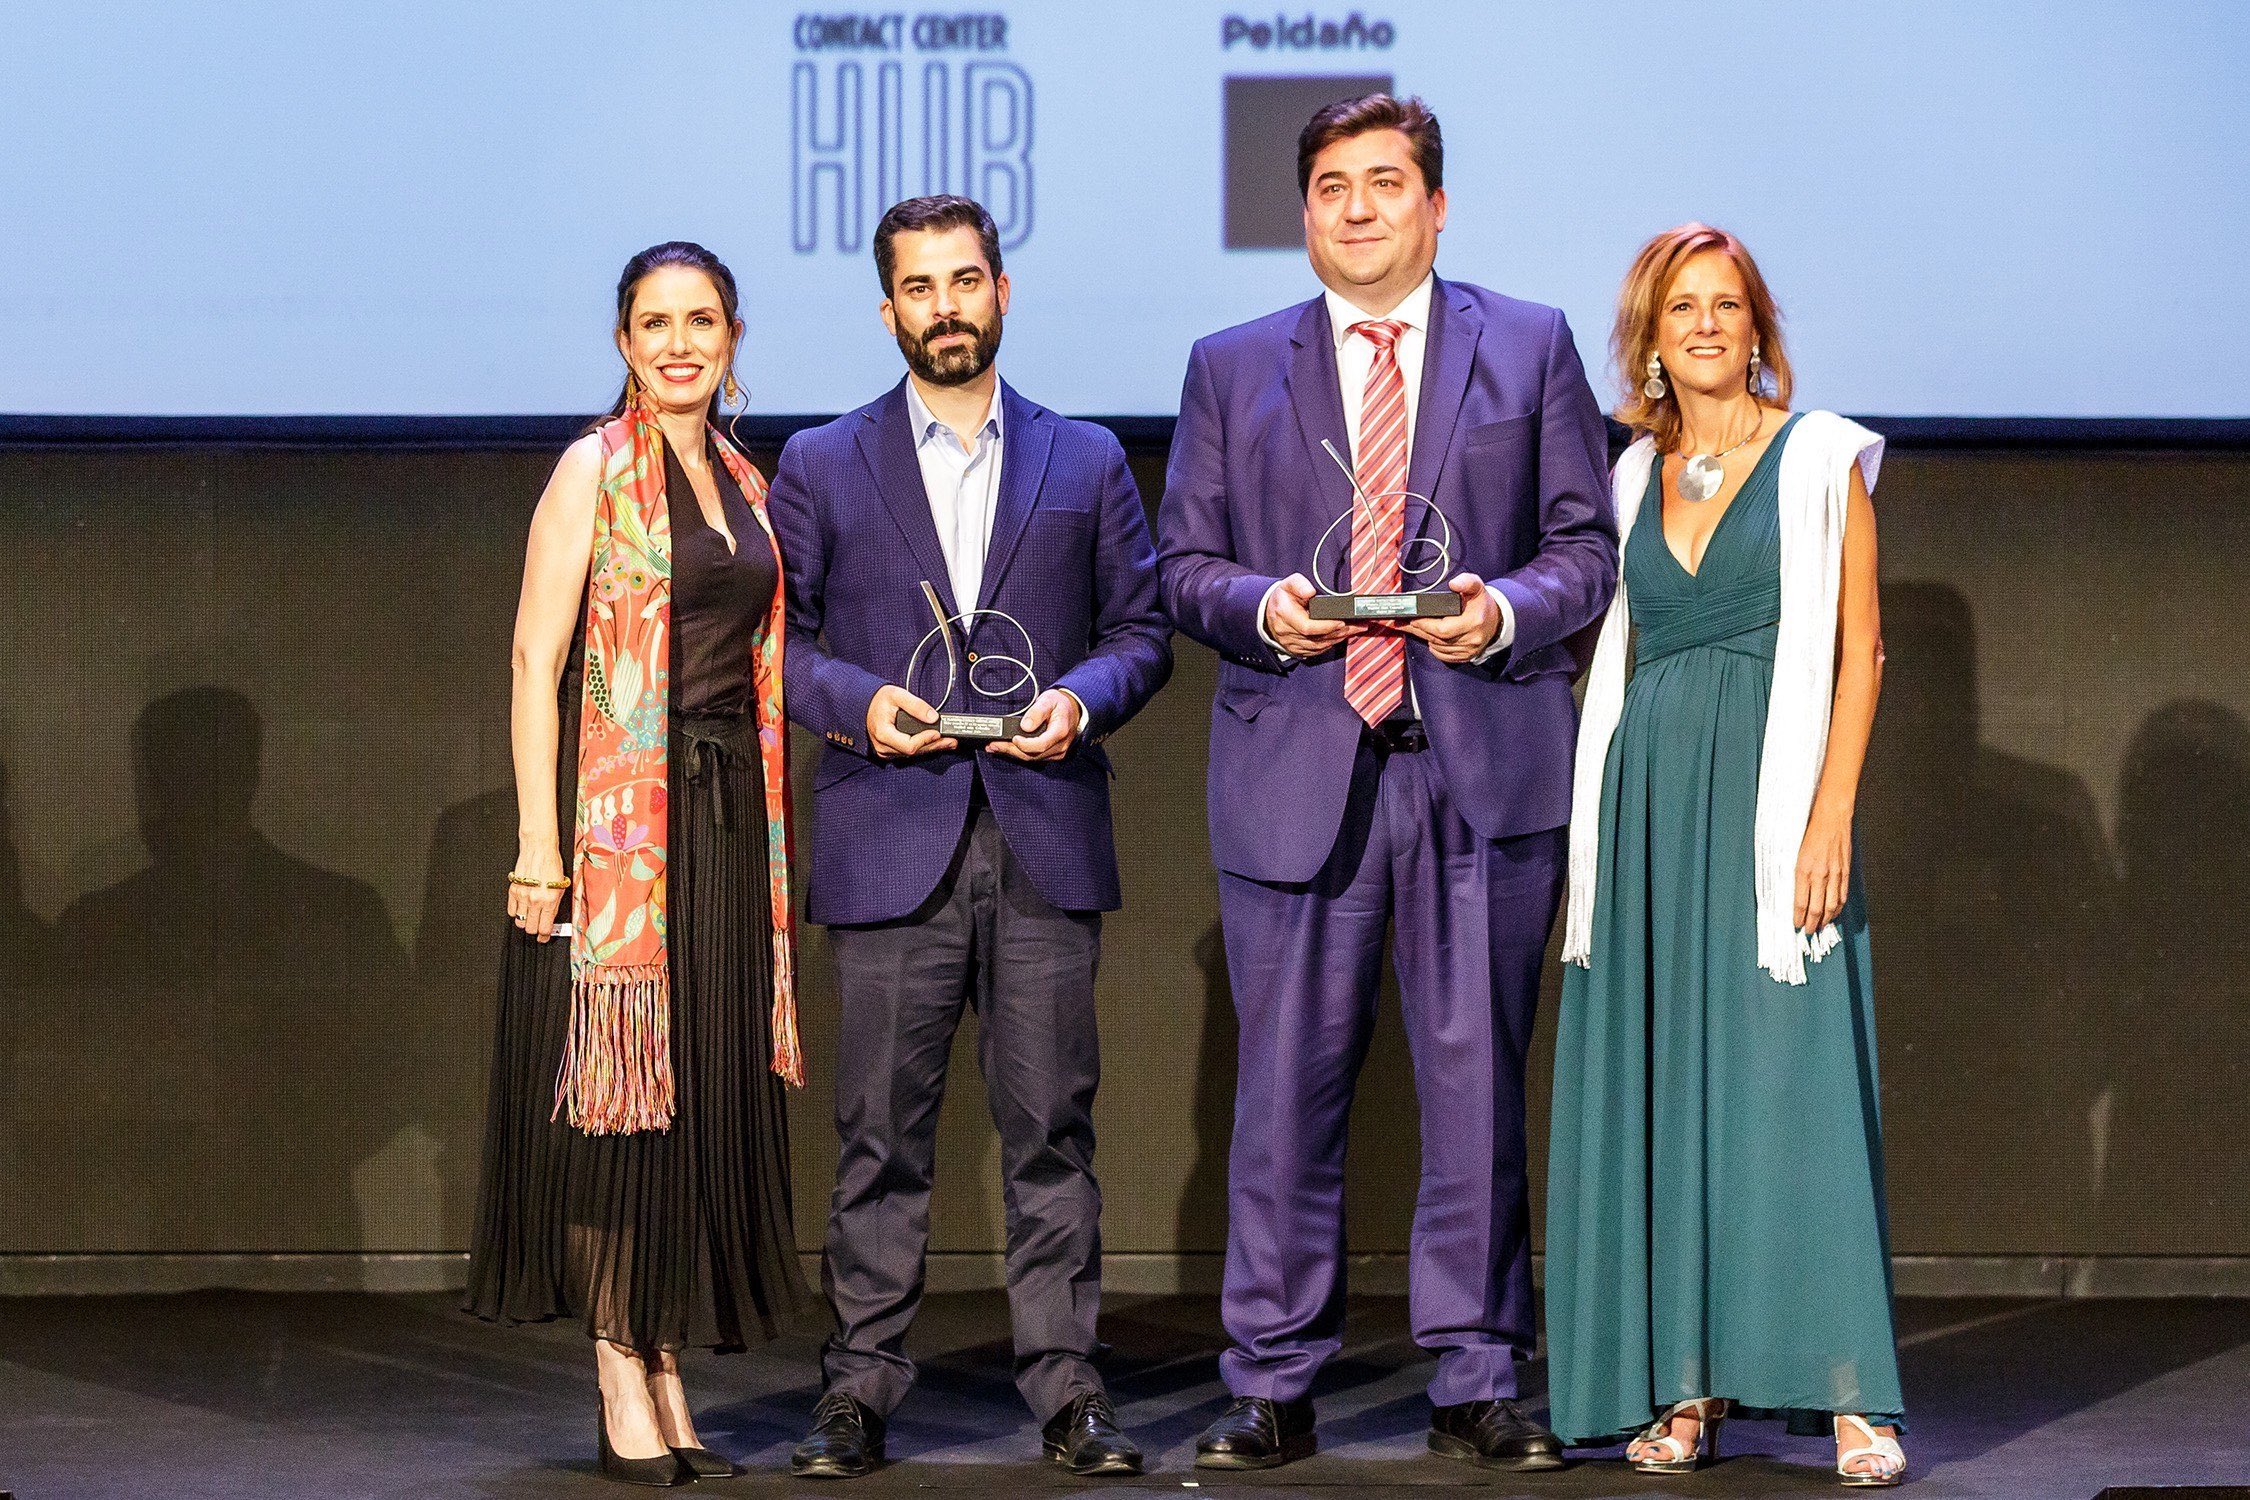 Víctor Blanco, Director of Projects and Information Technology of Cobralia and Javier Vega, CEO of Vozitel collecting awardVíctor Blanco, Director of Projects and Information Technology of Cobralia and Javier Vega, CEO of Vozitel collecting award